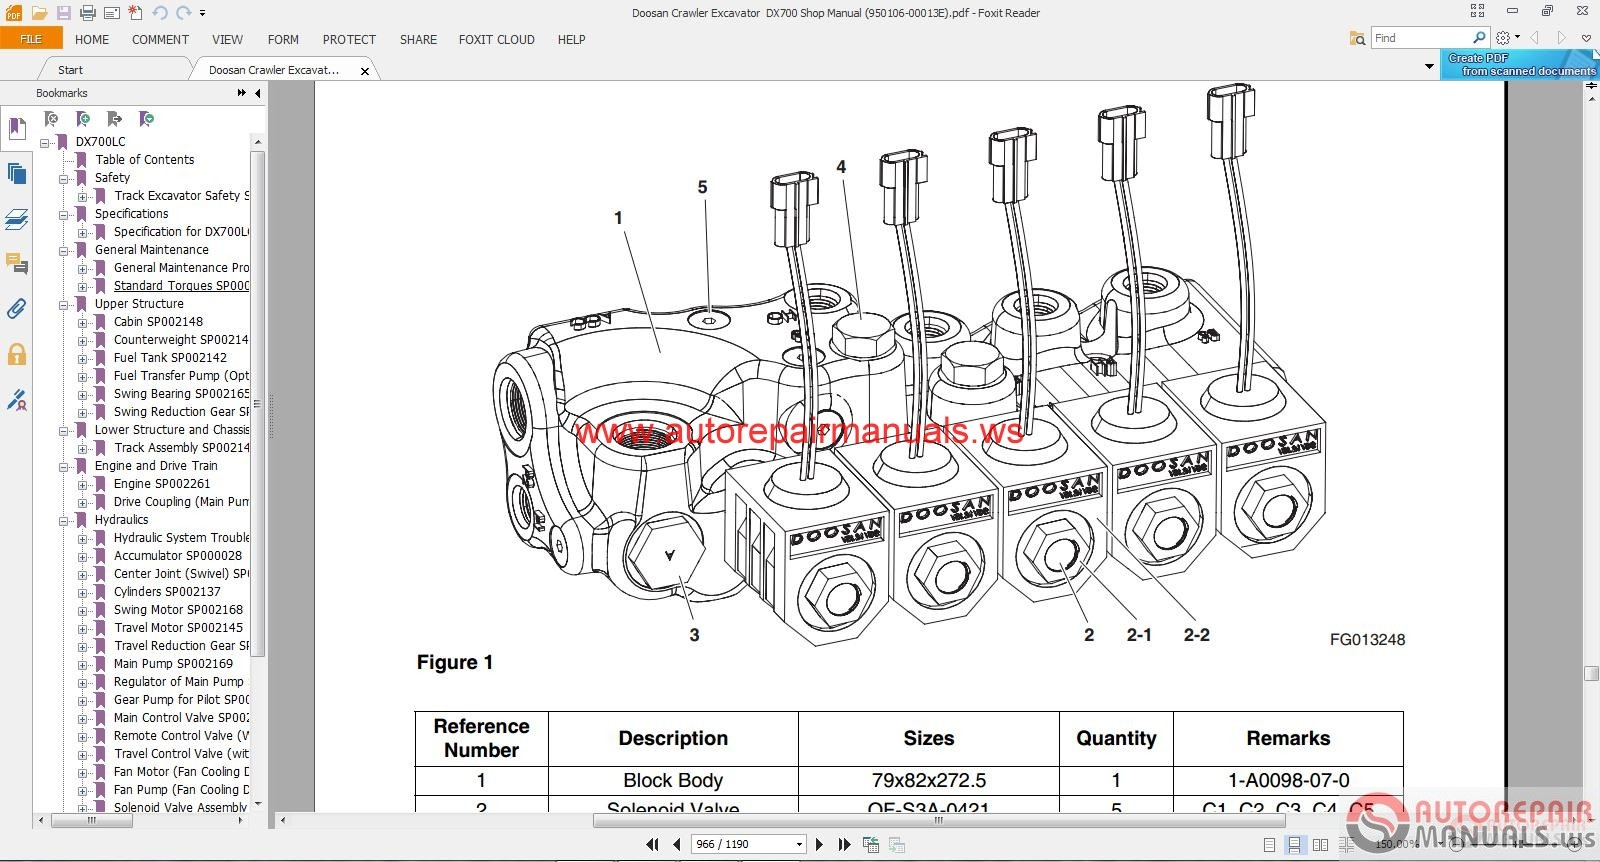 Doosan Forklift Wiring Diagram. Diagrams. Wiring Diagram